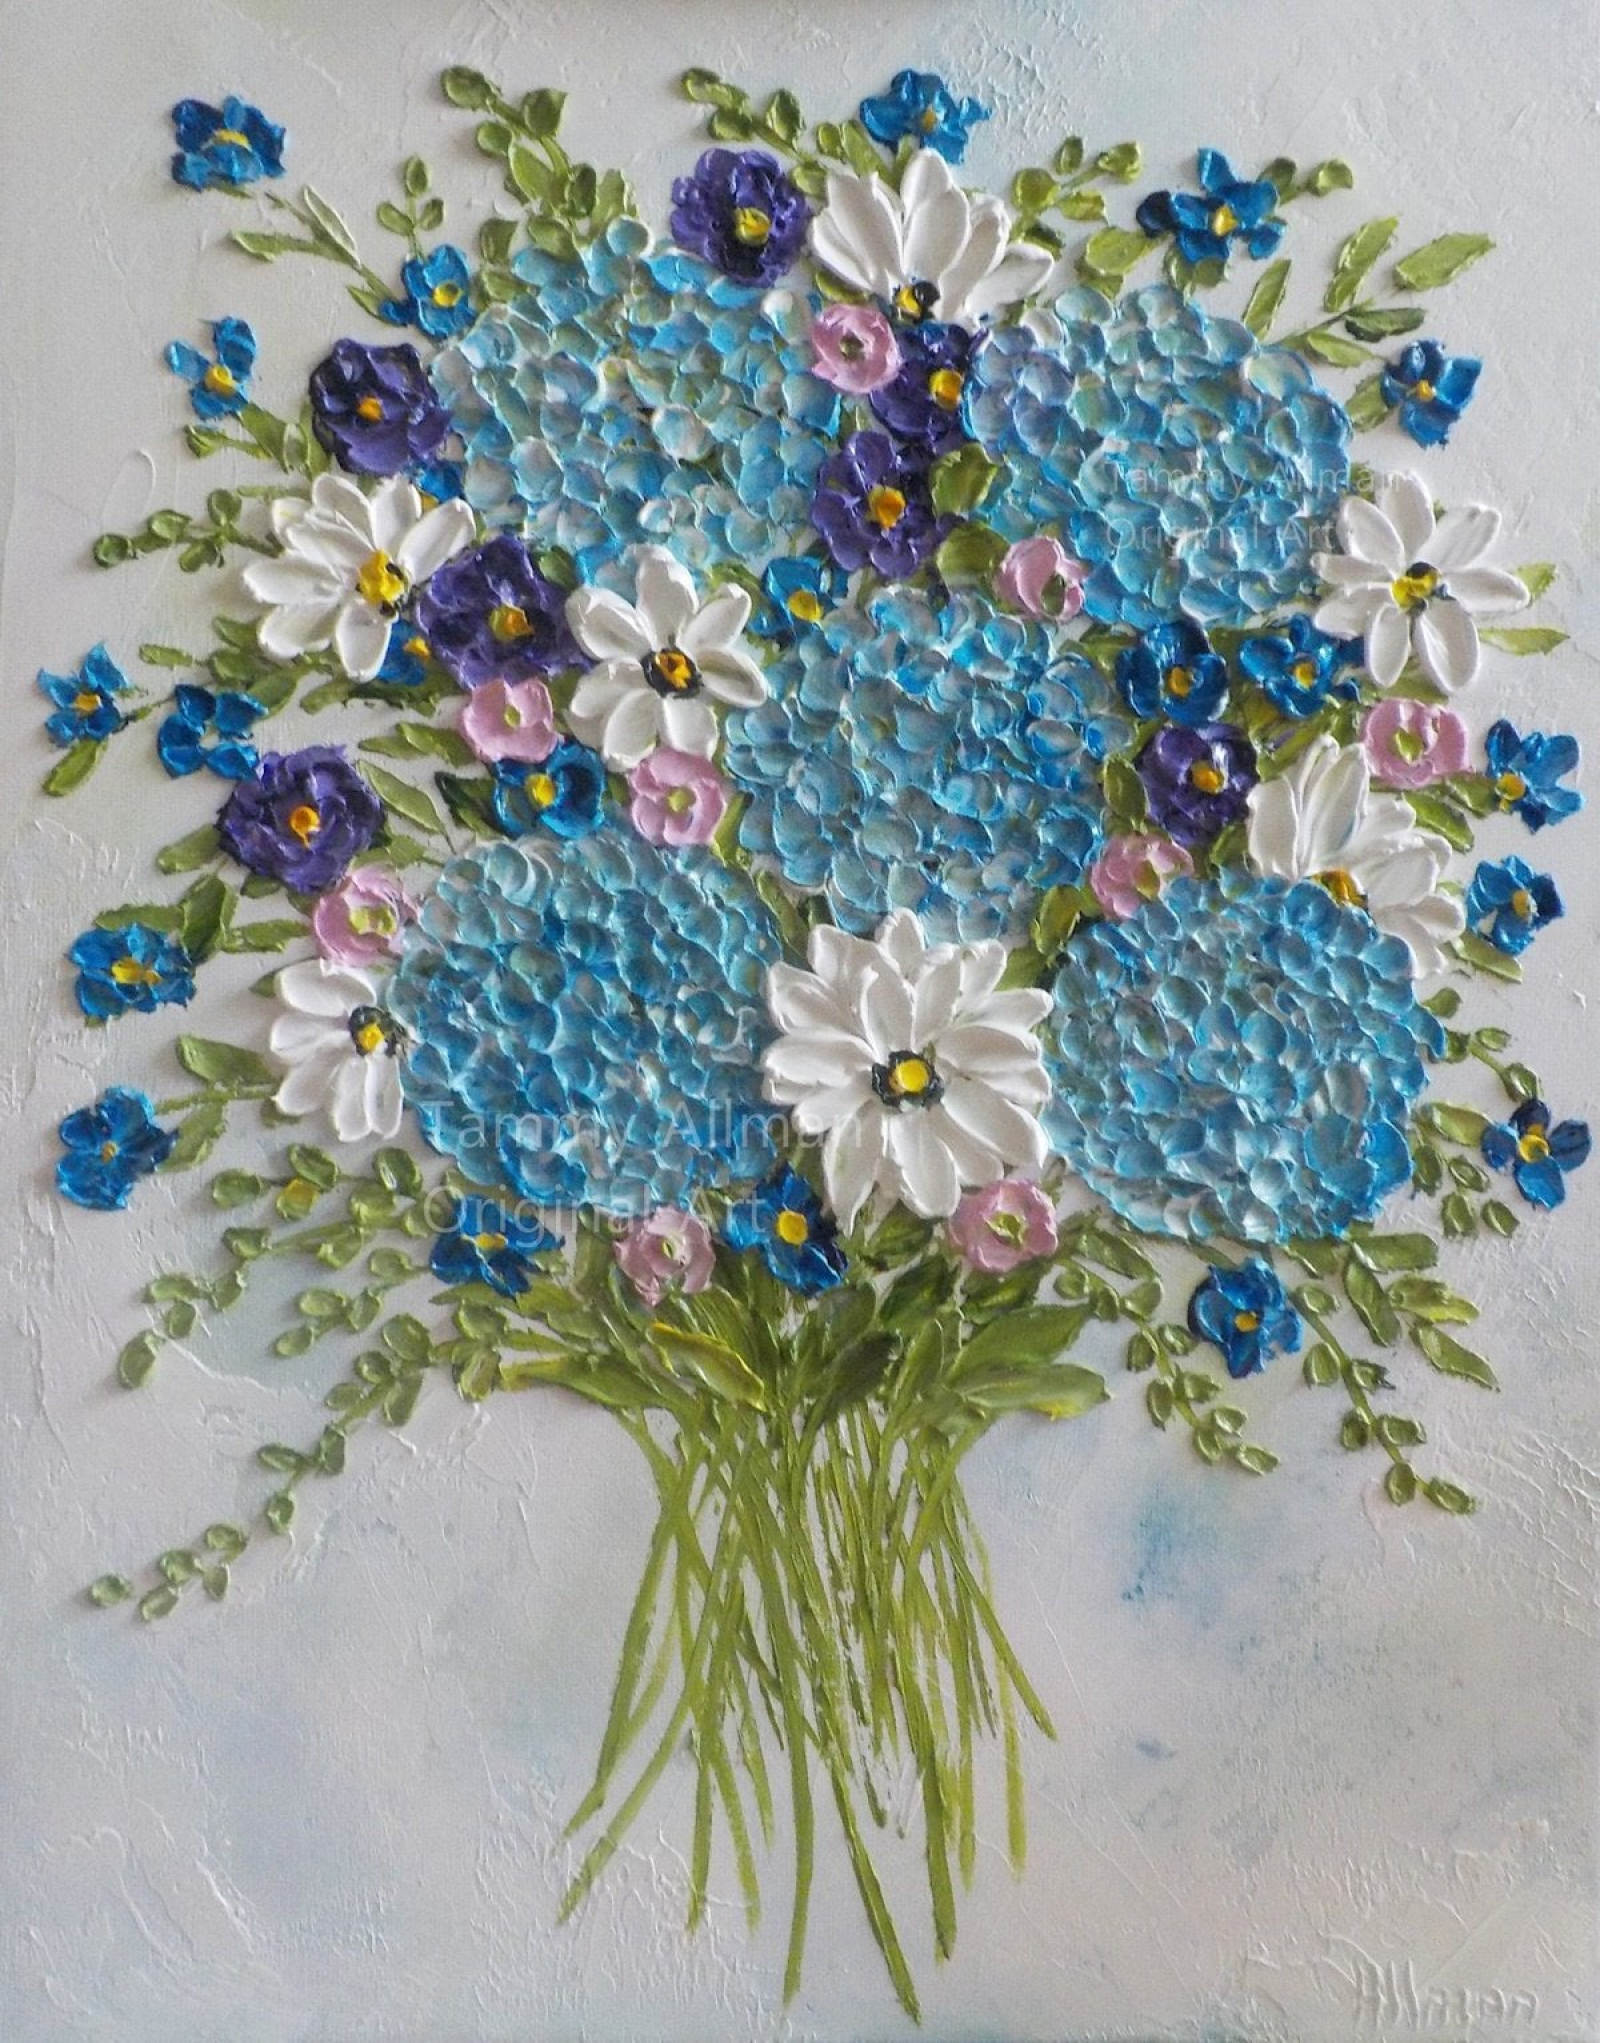 Whimsical Airy Bouquet Of Hydrangeas And Wildflowers Oil Impasto Painting Custom Oil Impasto Painting Kenzie S Cottage